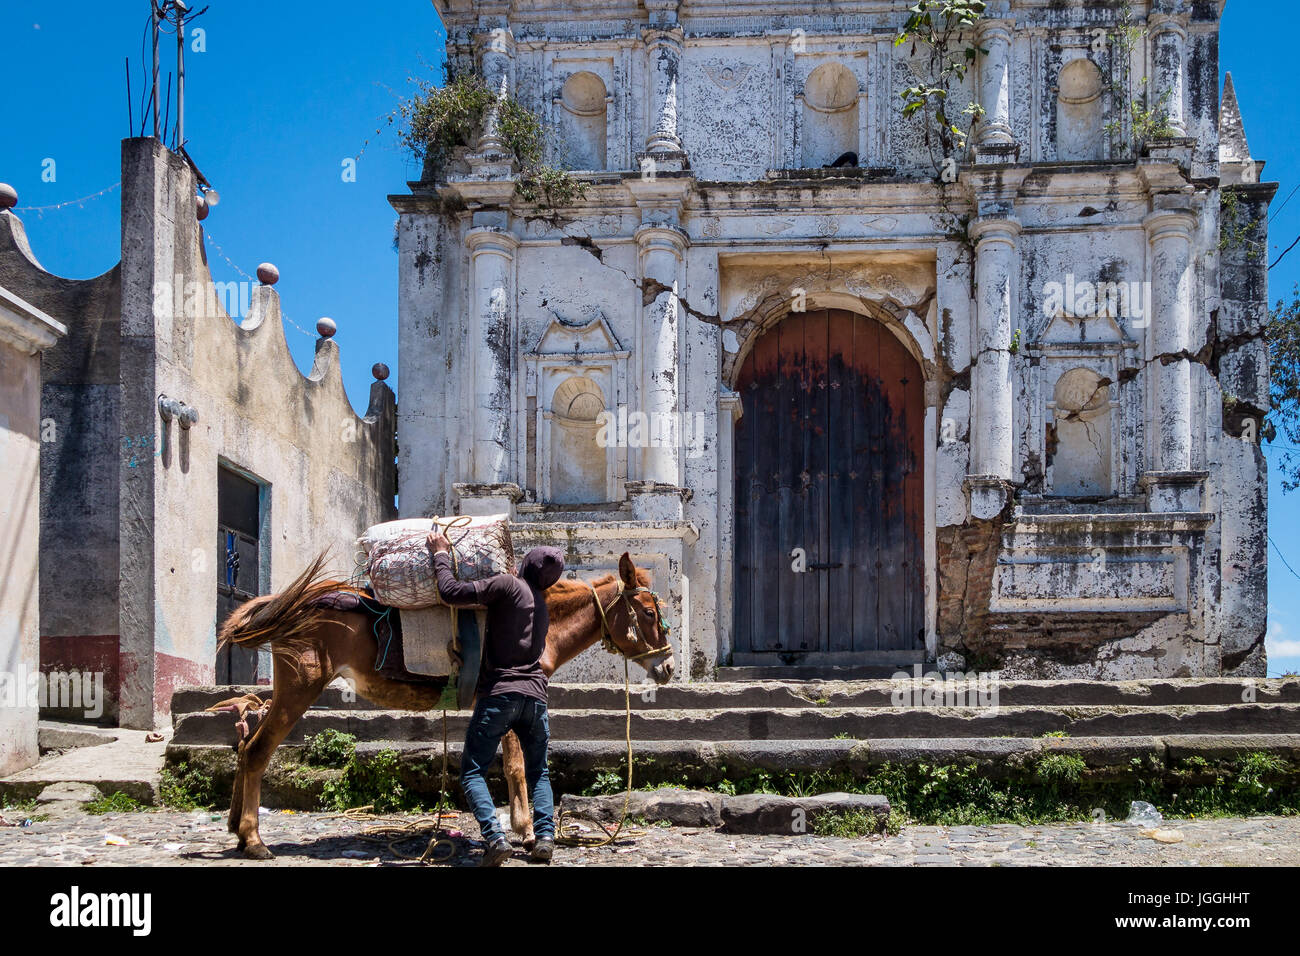 A local man from Guatemala, charging his donkey (mule) in Guatemala Stock Photo